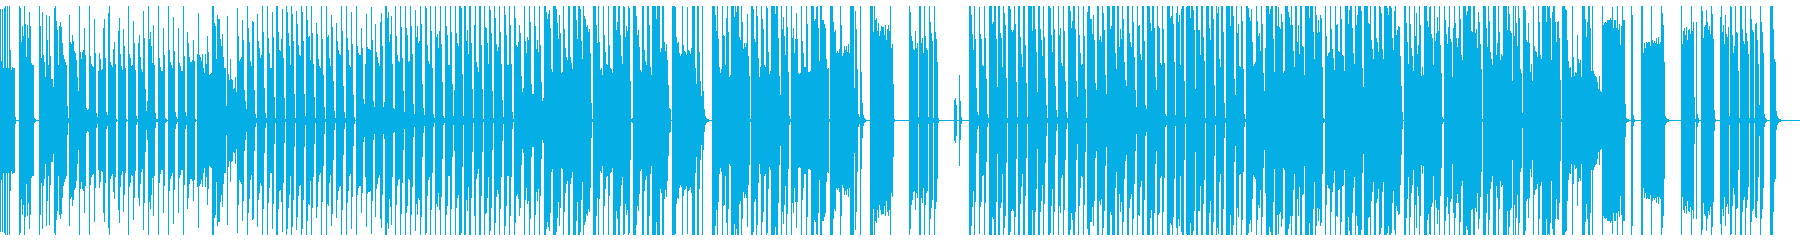 Rogue theme you can't give up somewhere's reproduced waveform